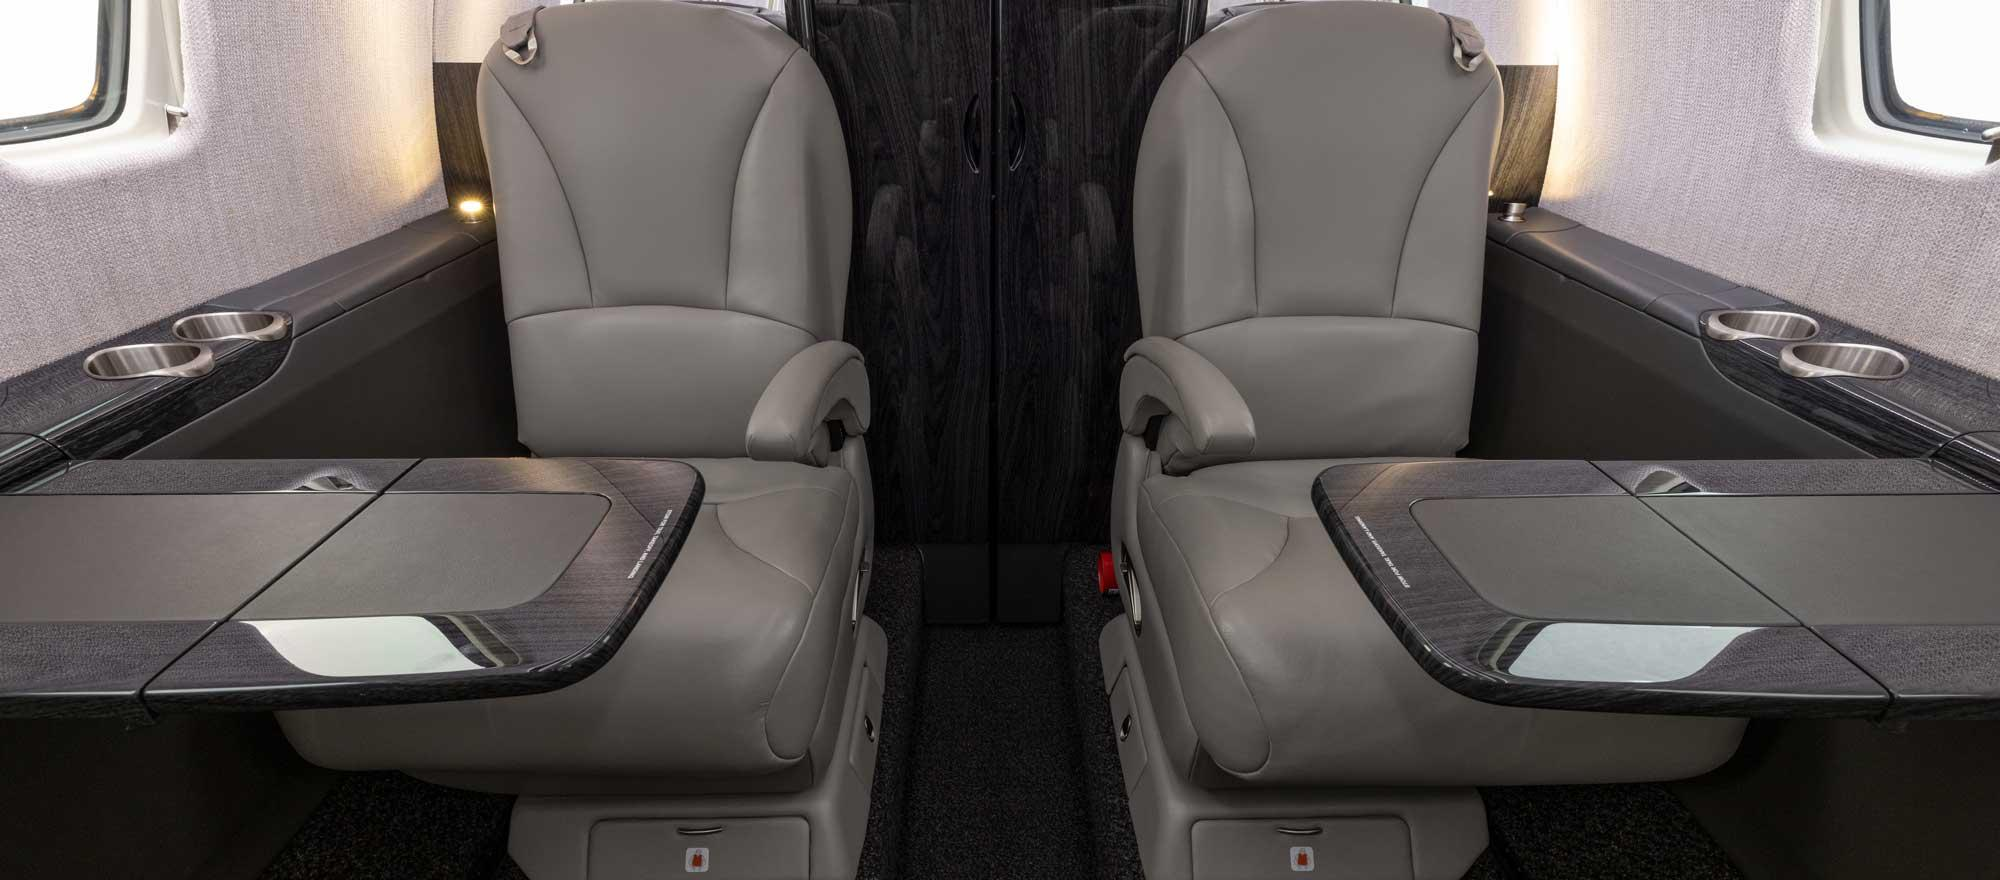 Duncan Aviation uses a process called hydrodipping to expand cabin design options while reducing cost and downtime.